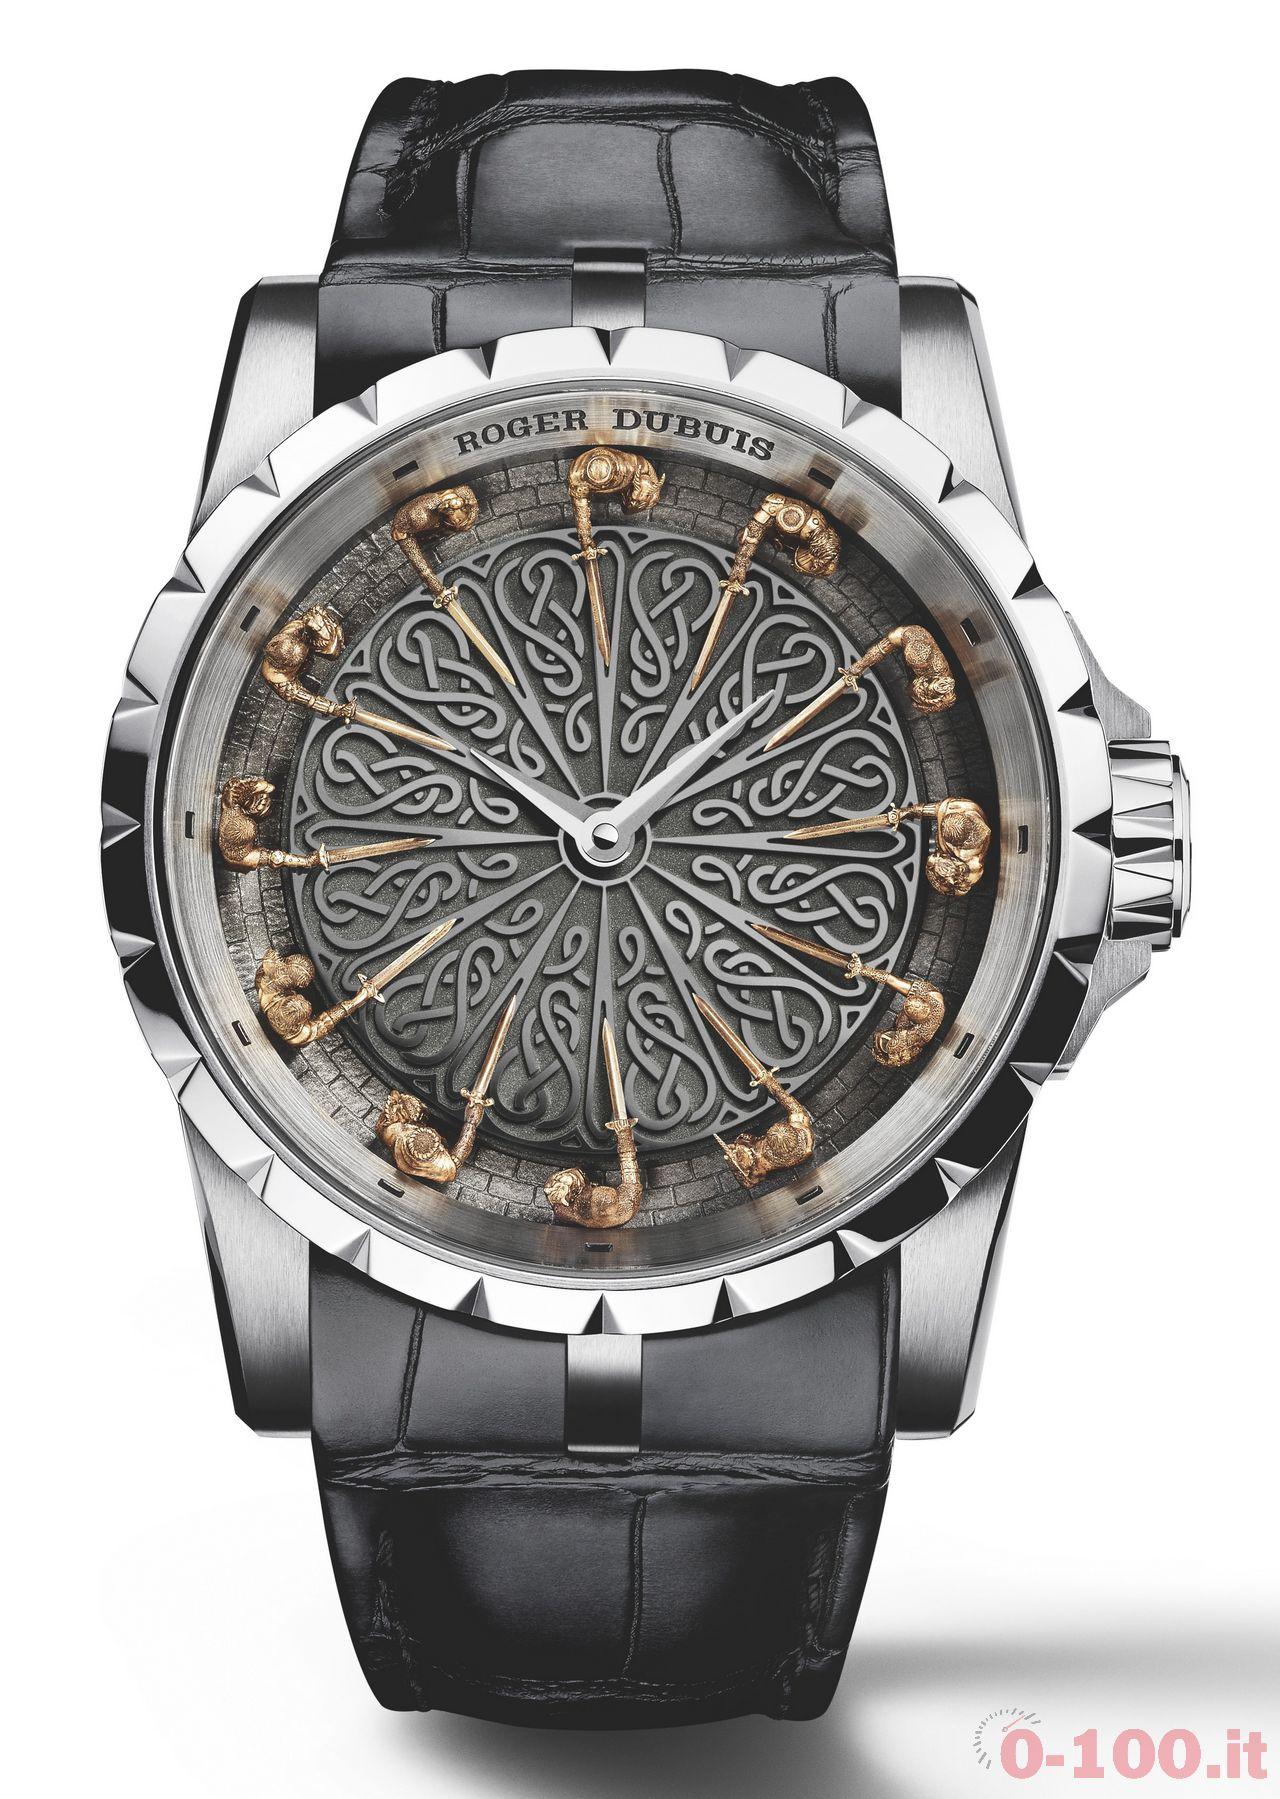 Roger dubuis excalibur knights of the round table limited - Knights of the round table watch price ...